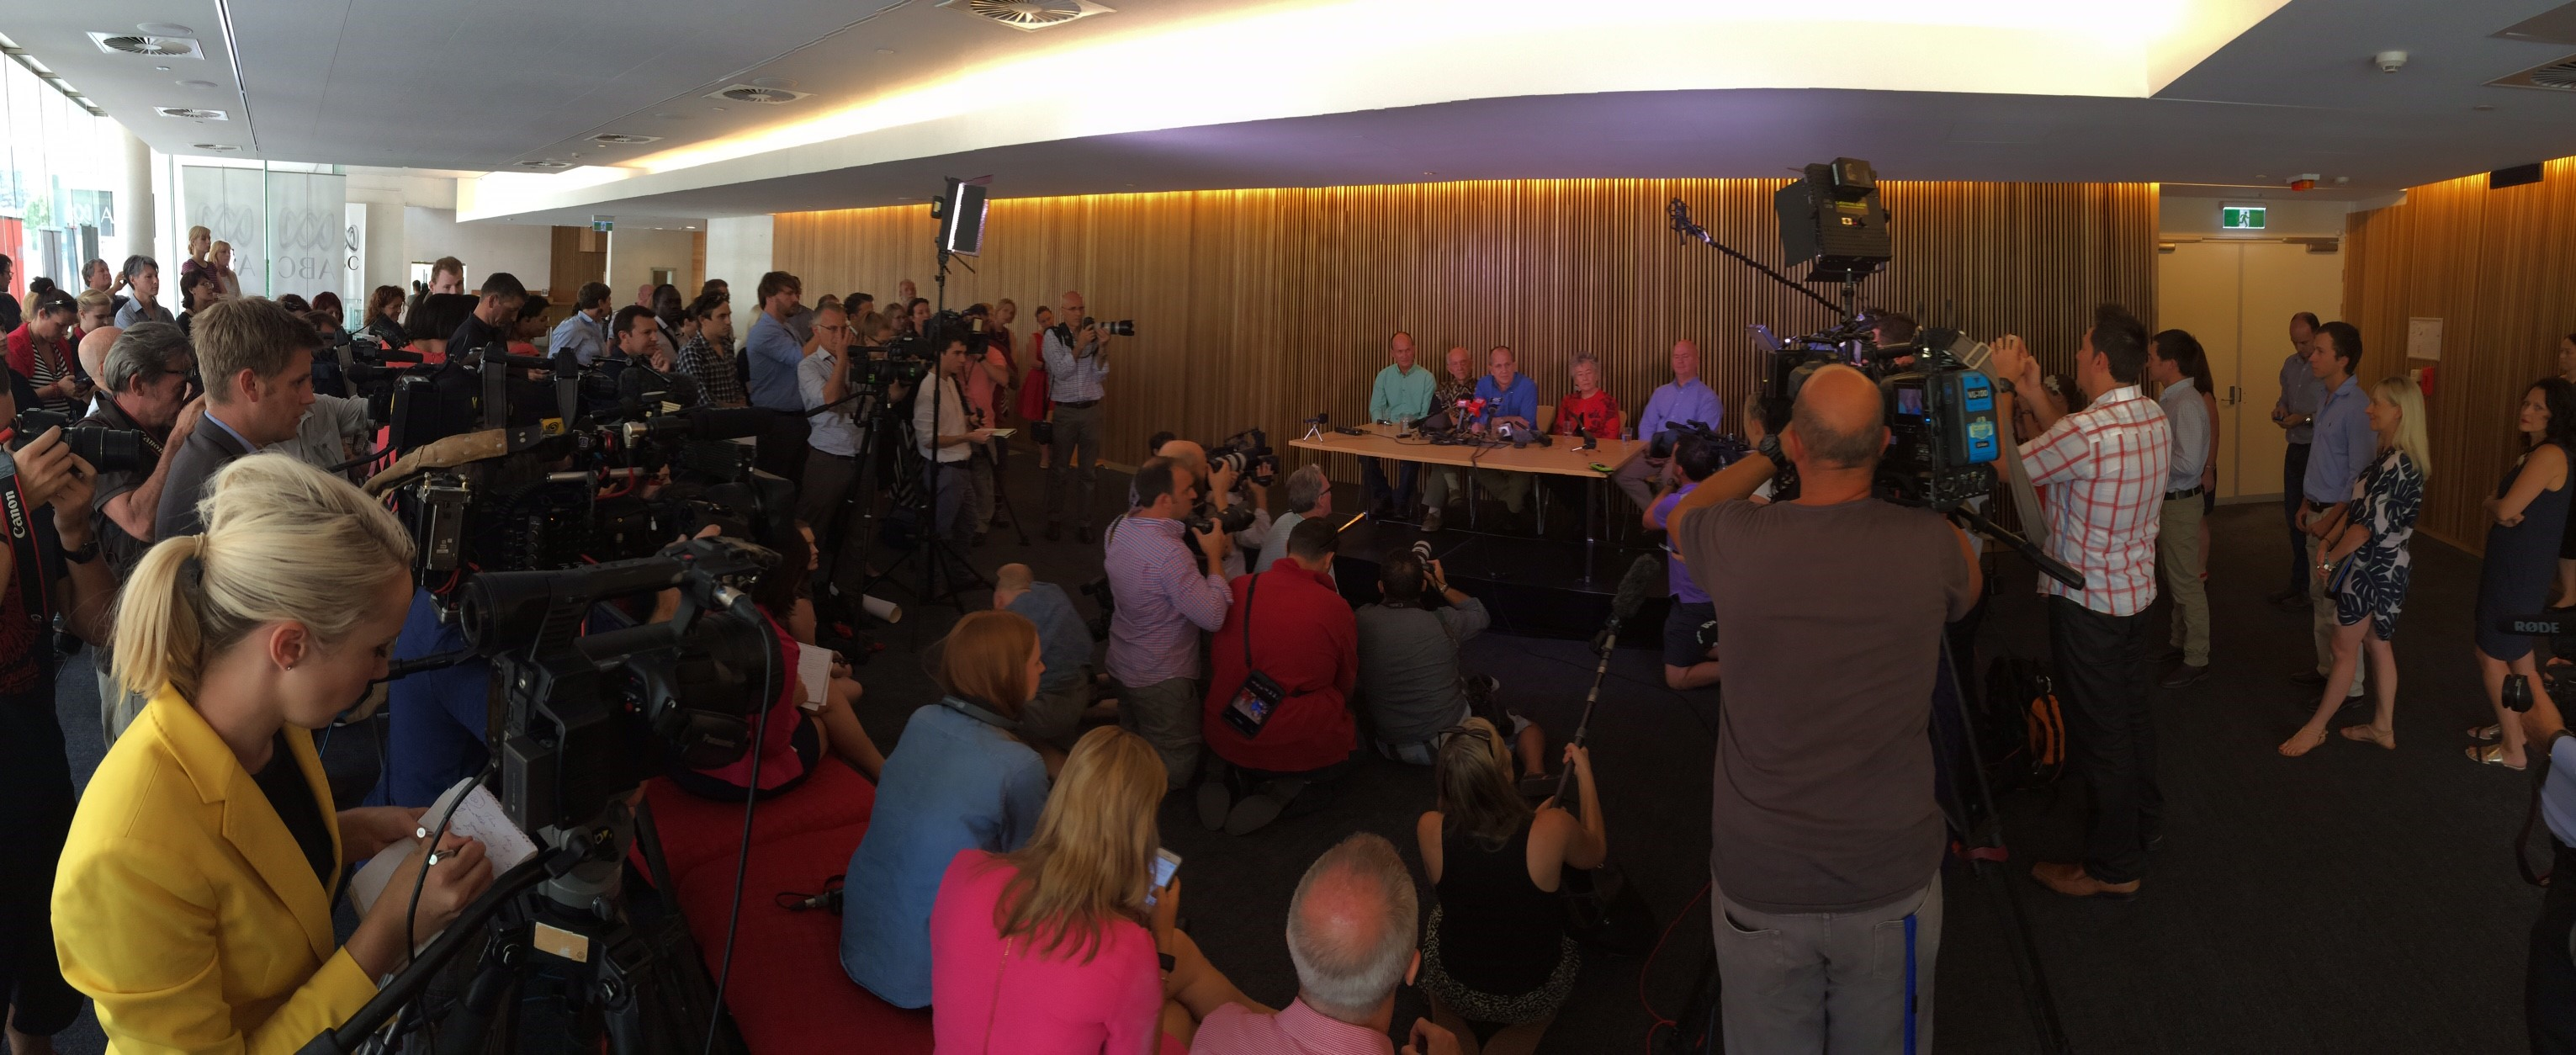 A massive media scrum surrounds freed journalist Peter Greste at his Brisbane press conference on February 5.